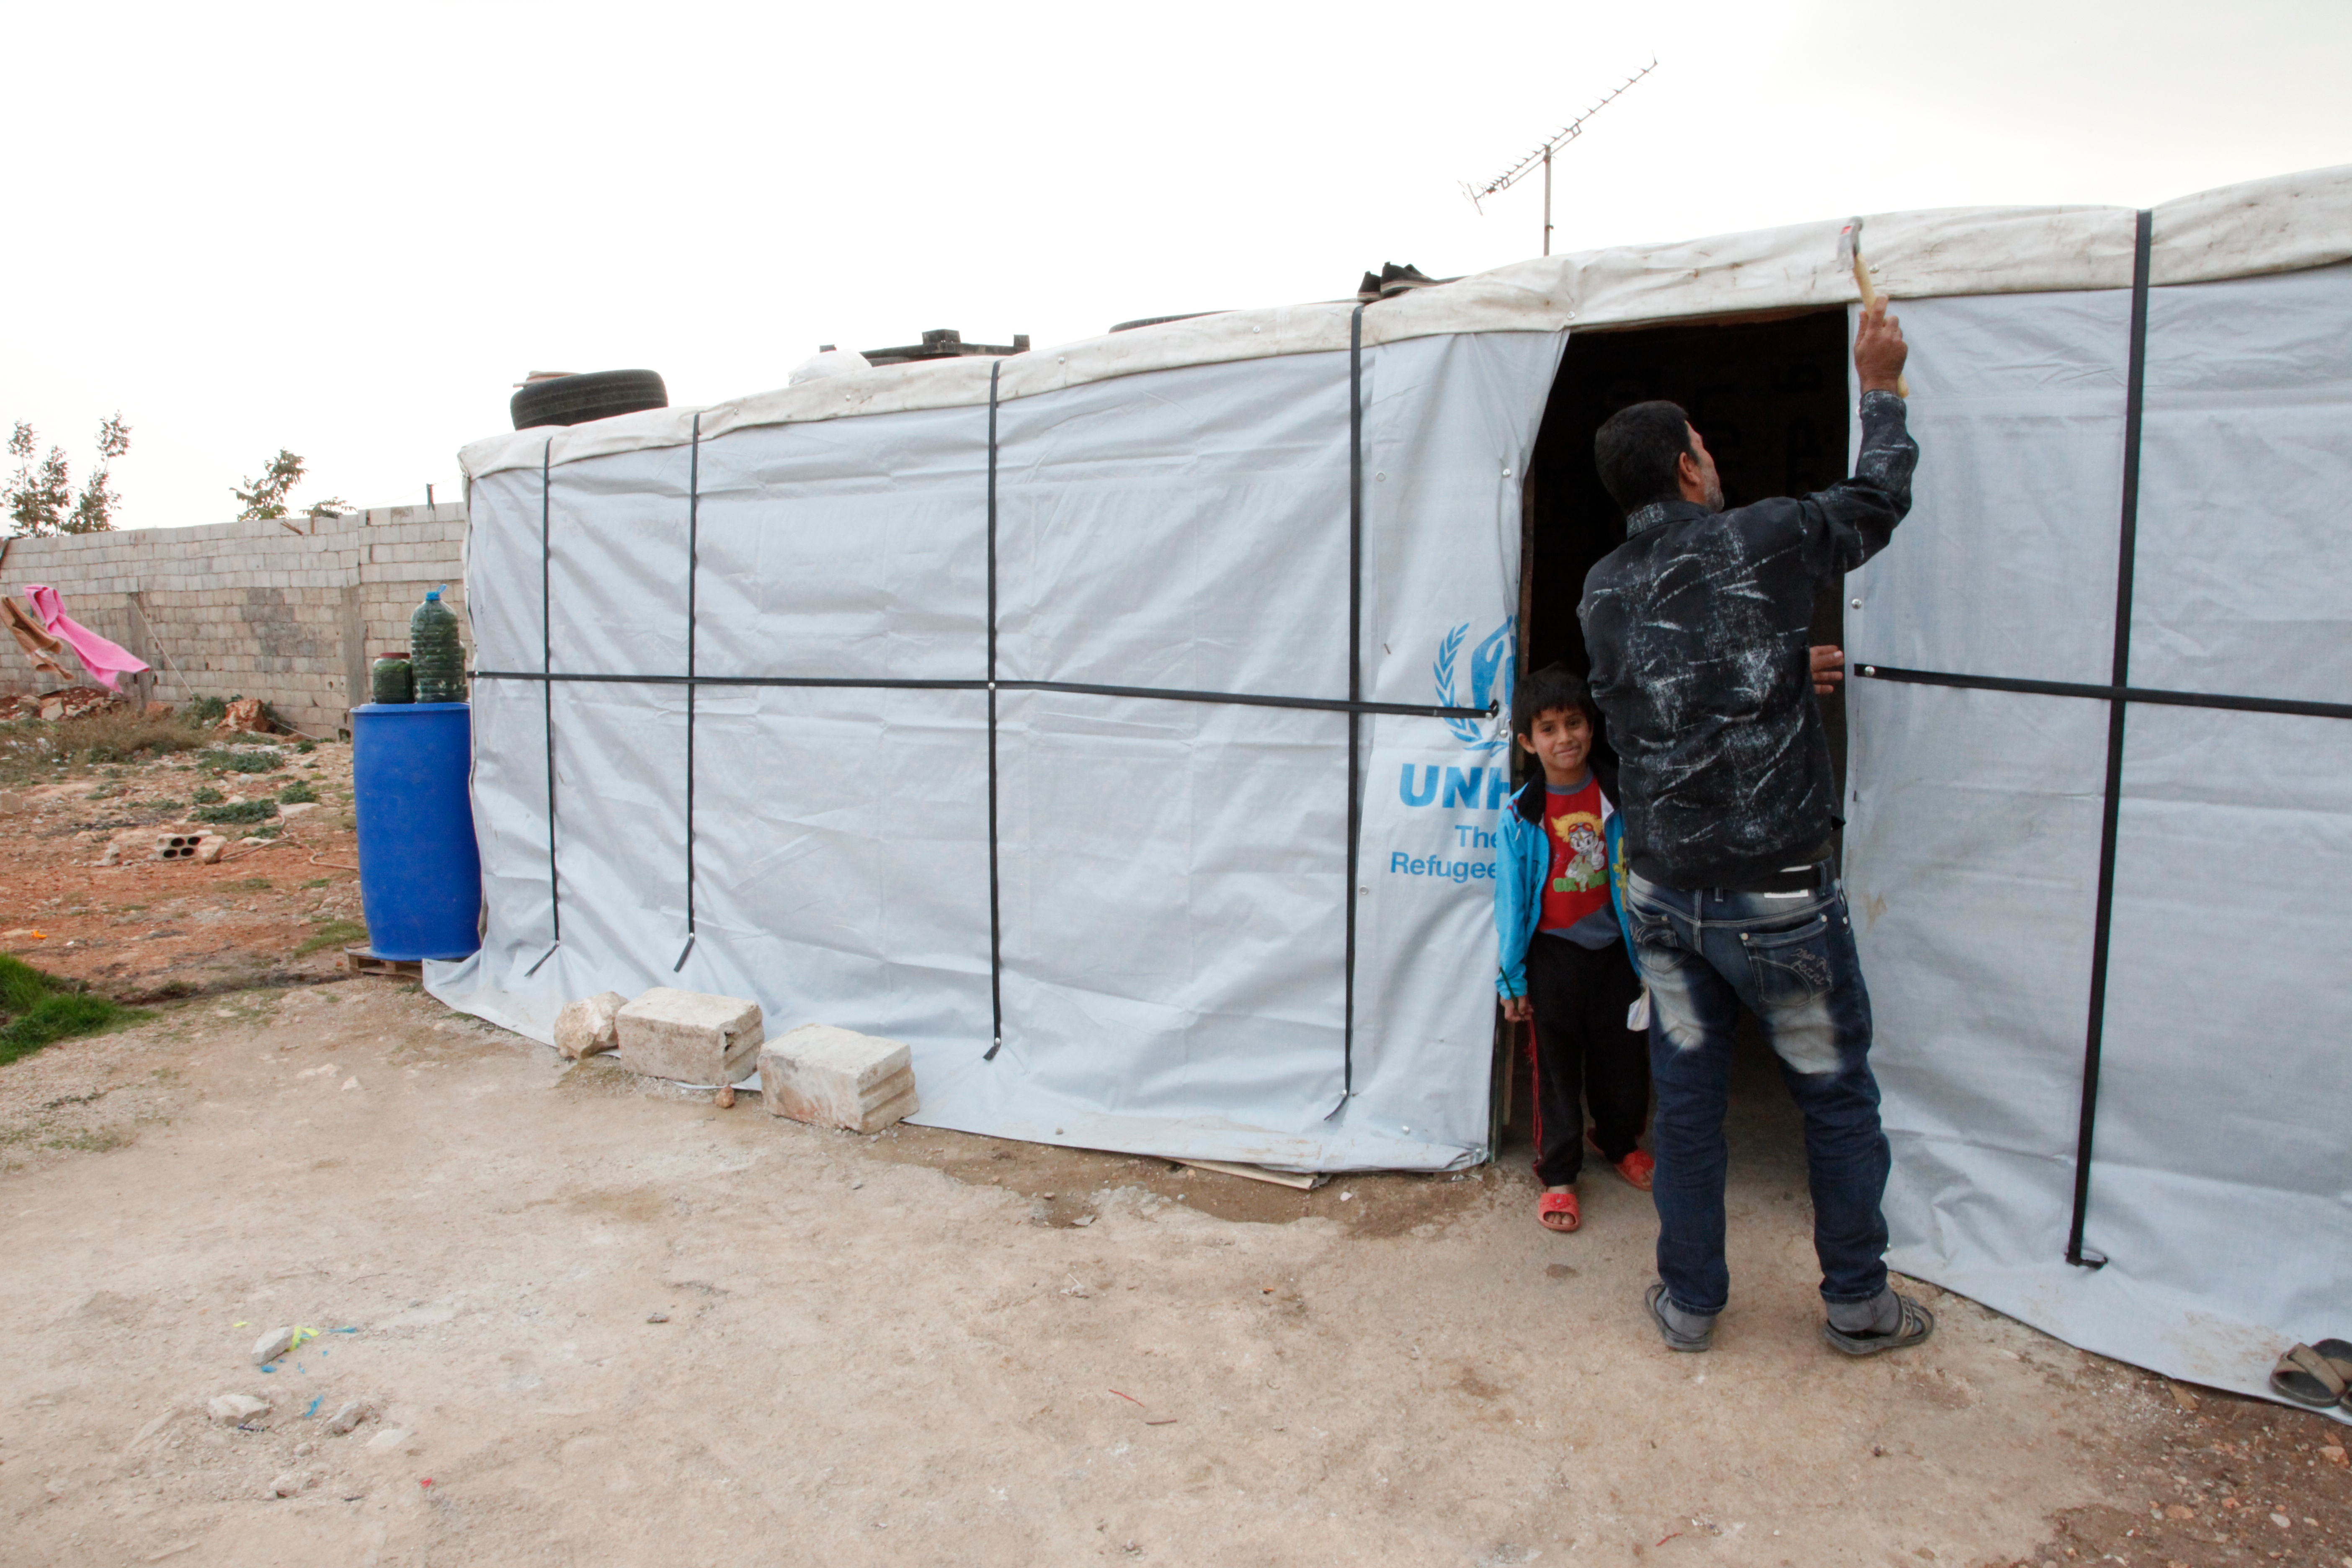 A man ties up the cloth entrance to his UNHCR tent. He has his back to the camera. His son peaks out at his side and smiles at the camera.